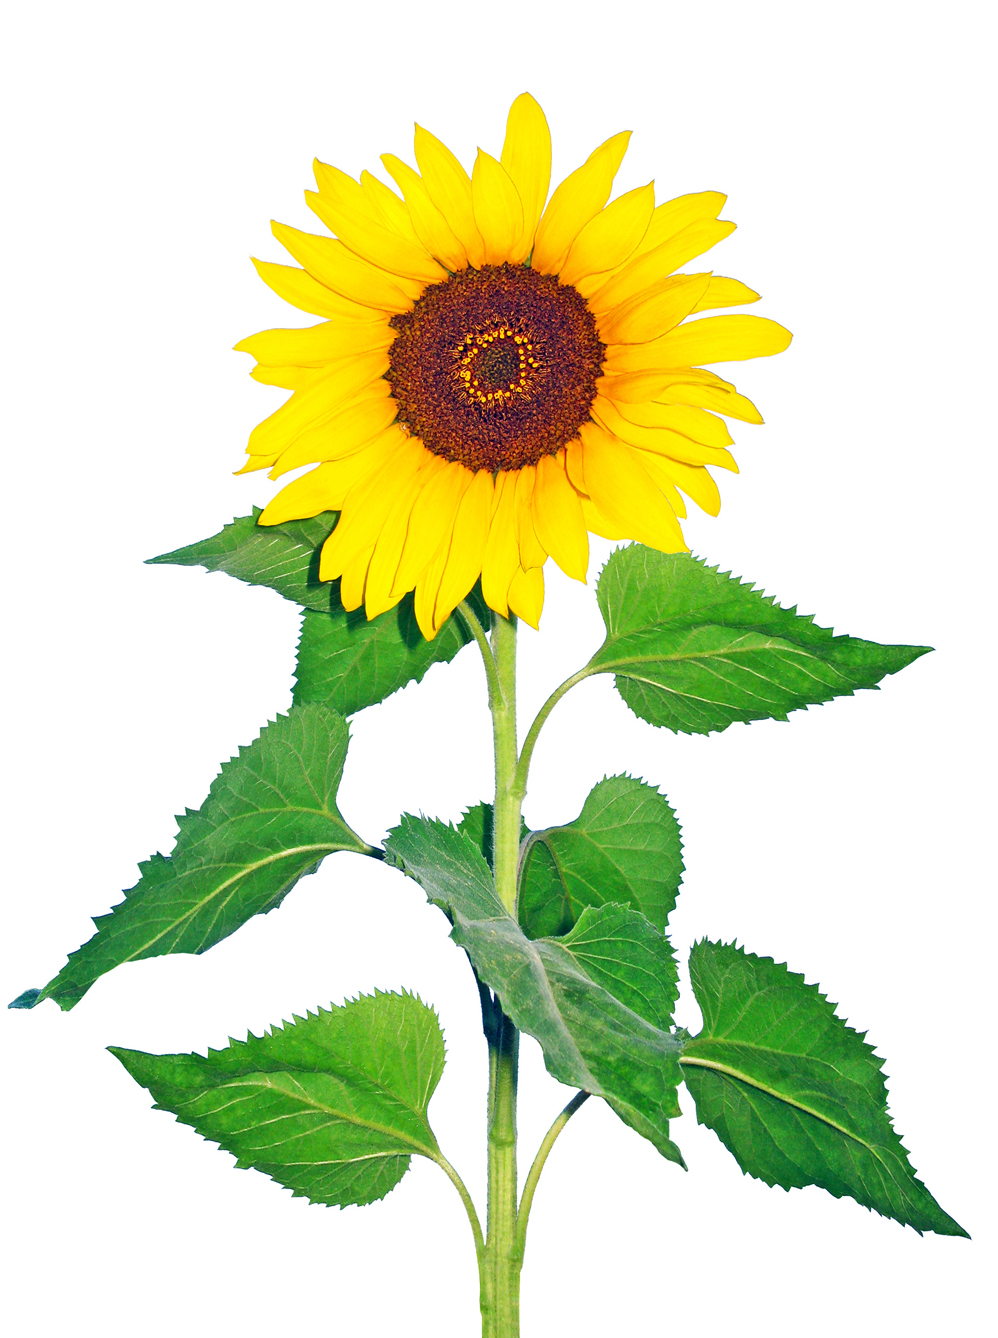 medium resolution of sunflower jpg